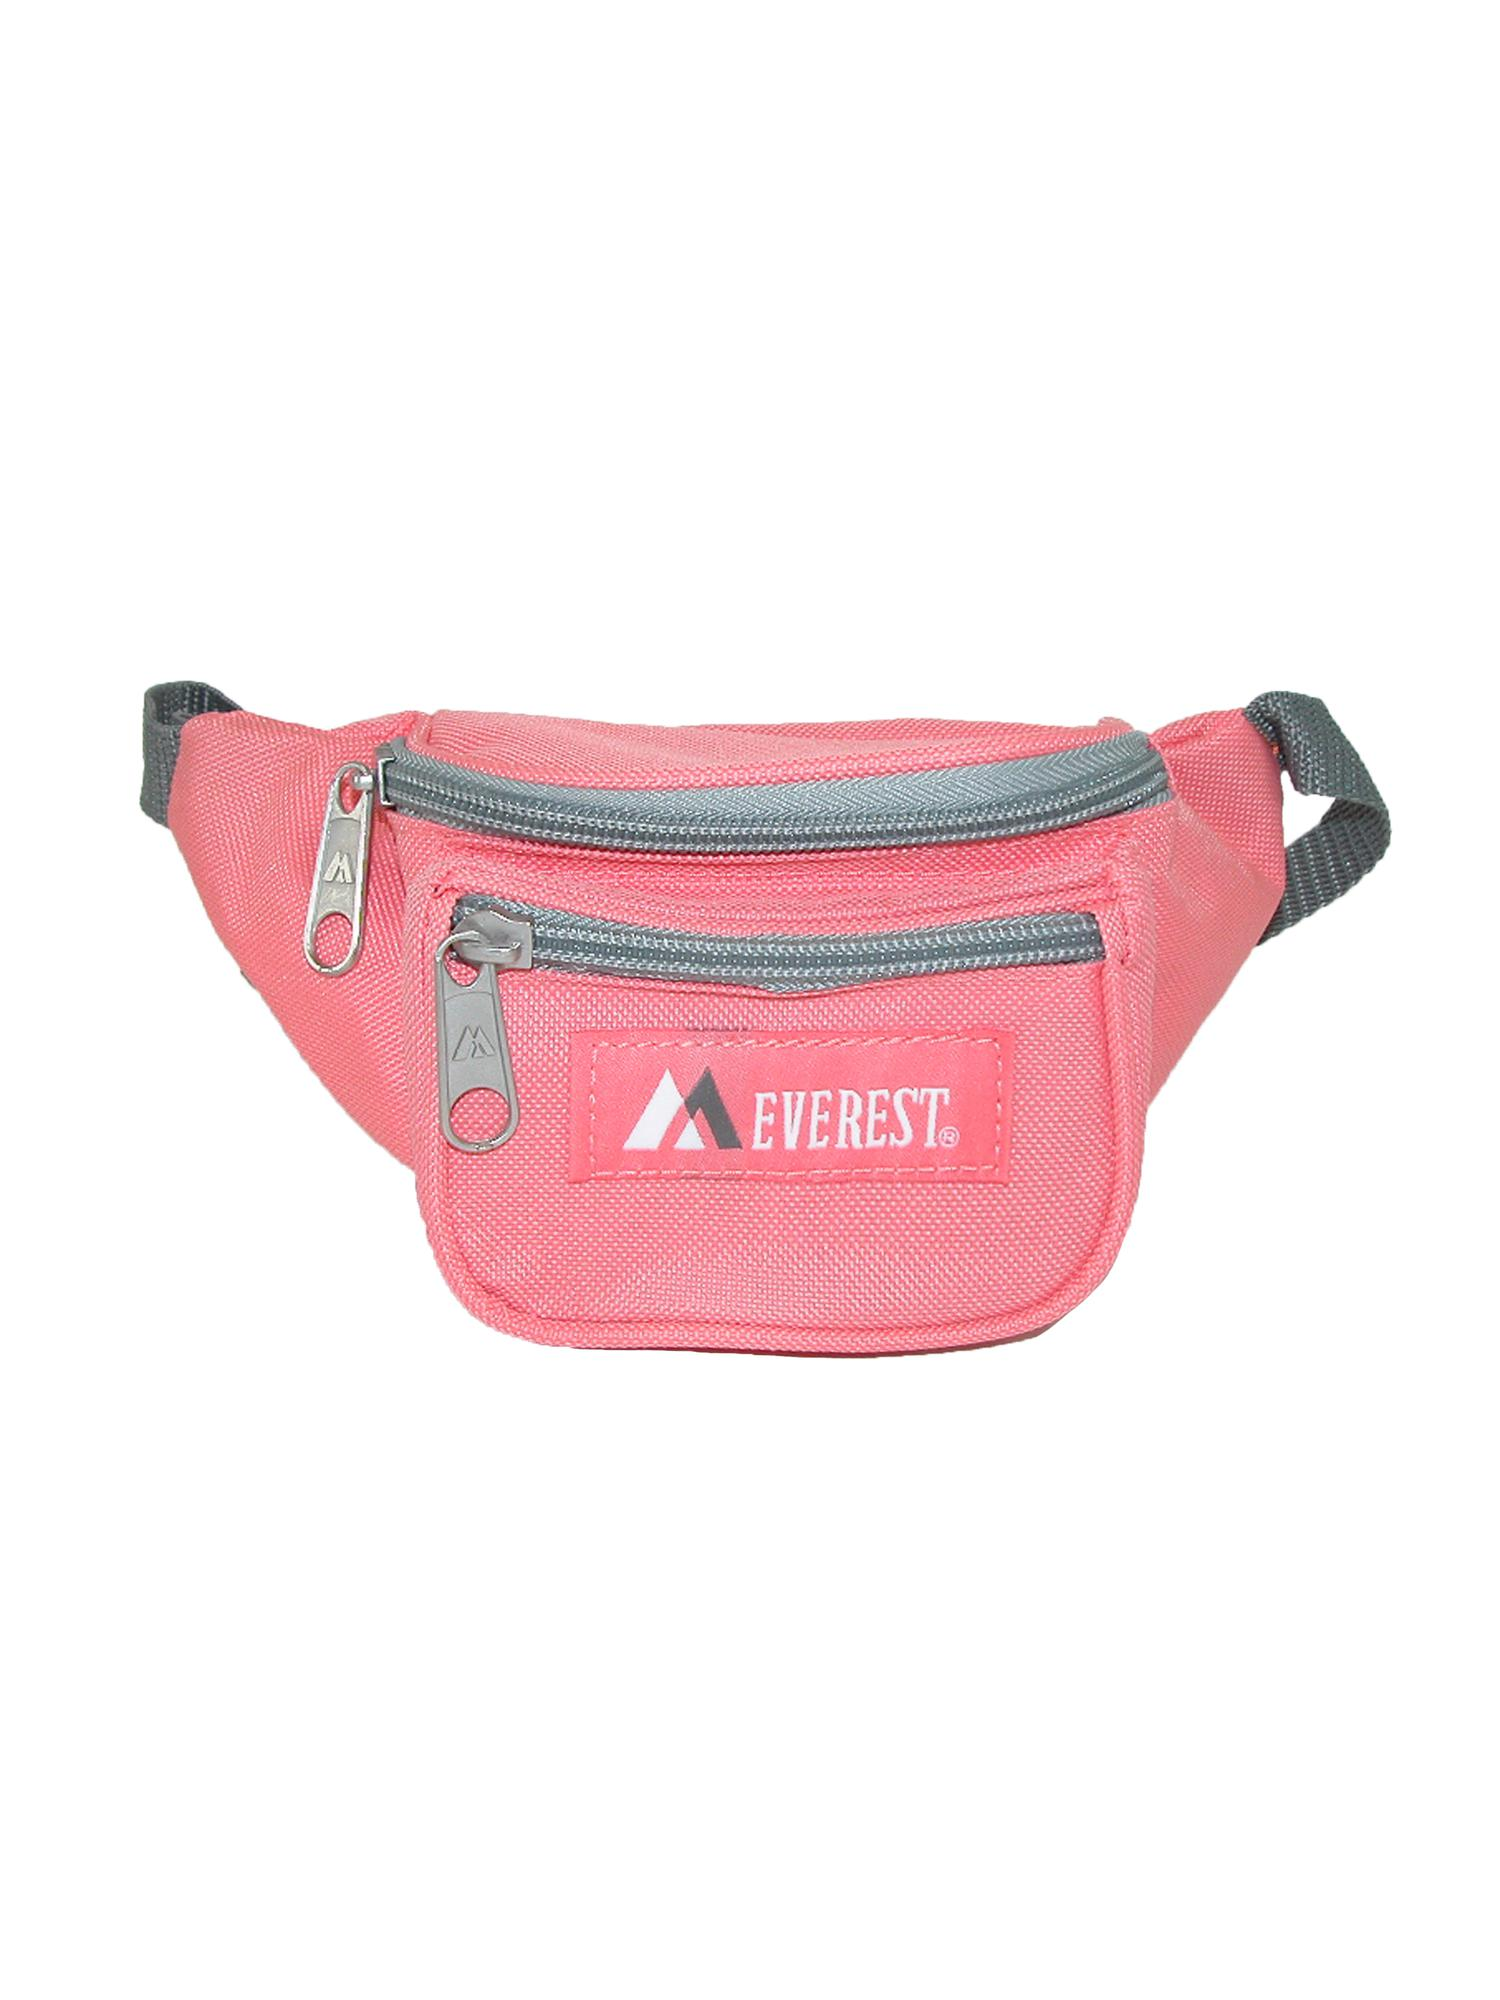 Everest  Girls Fabric Waist Pack Purse, Coral Pink/Grey